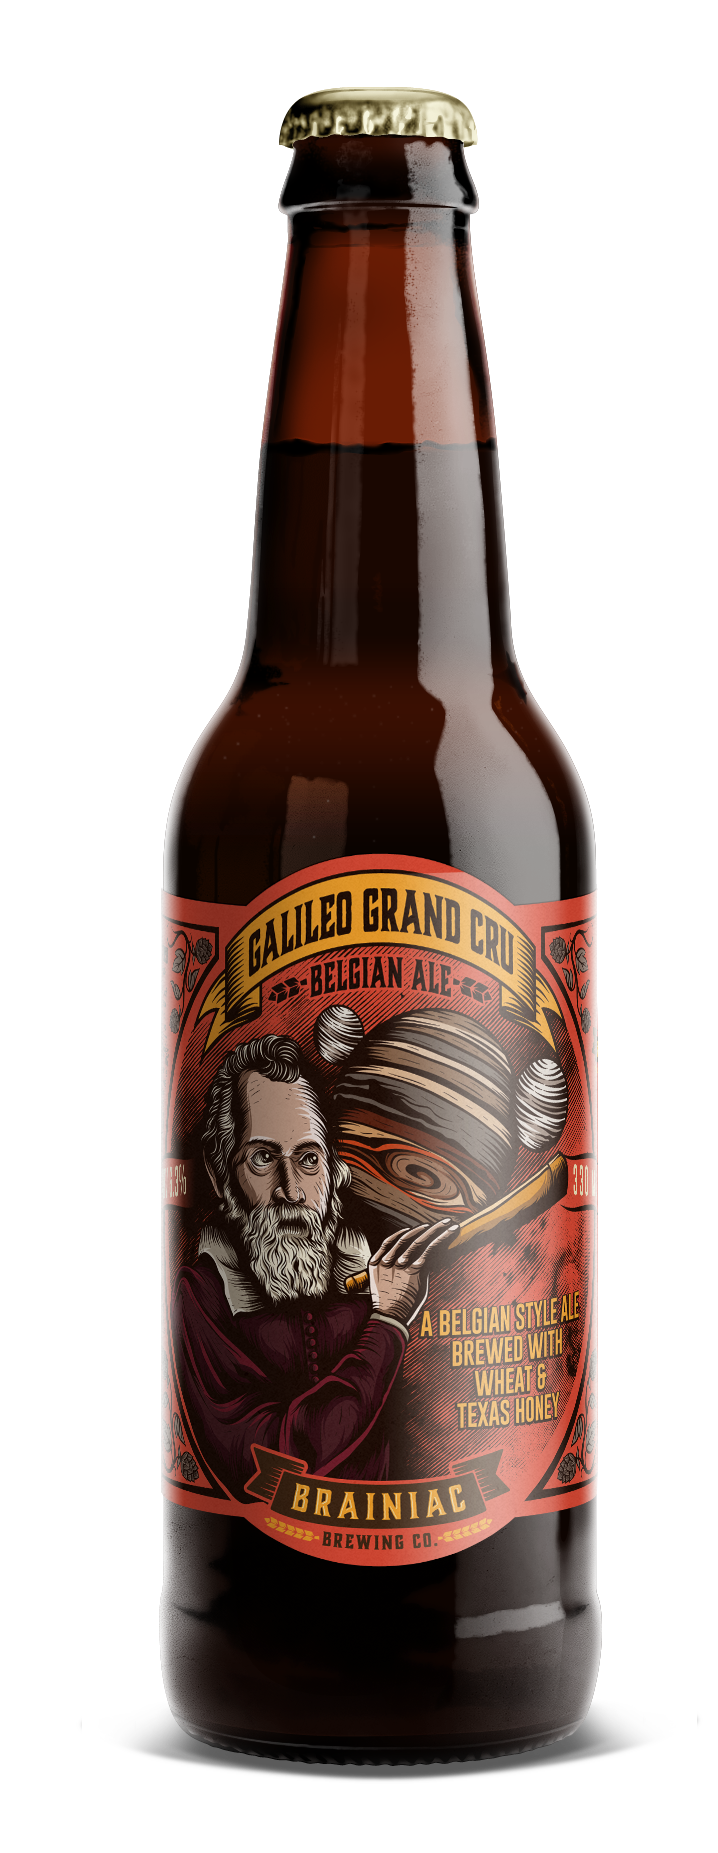 Design an eye-catching and intriguing beer label for Brainiac Brewing Co.